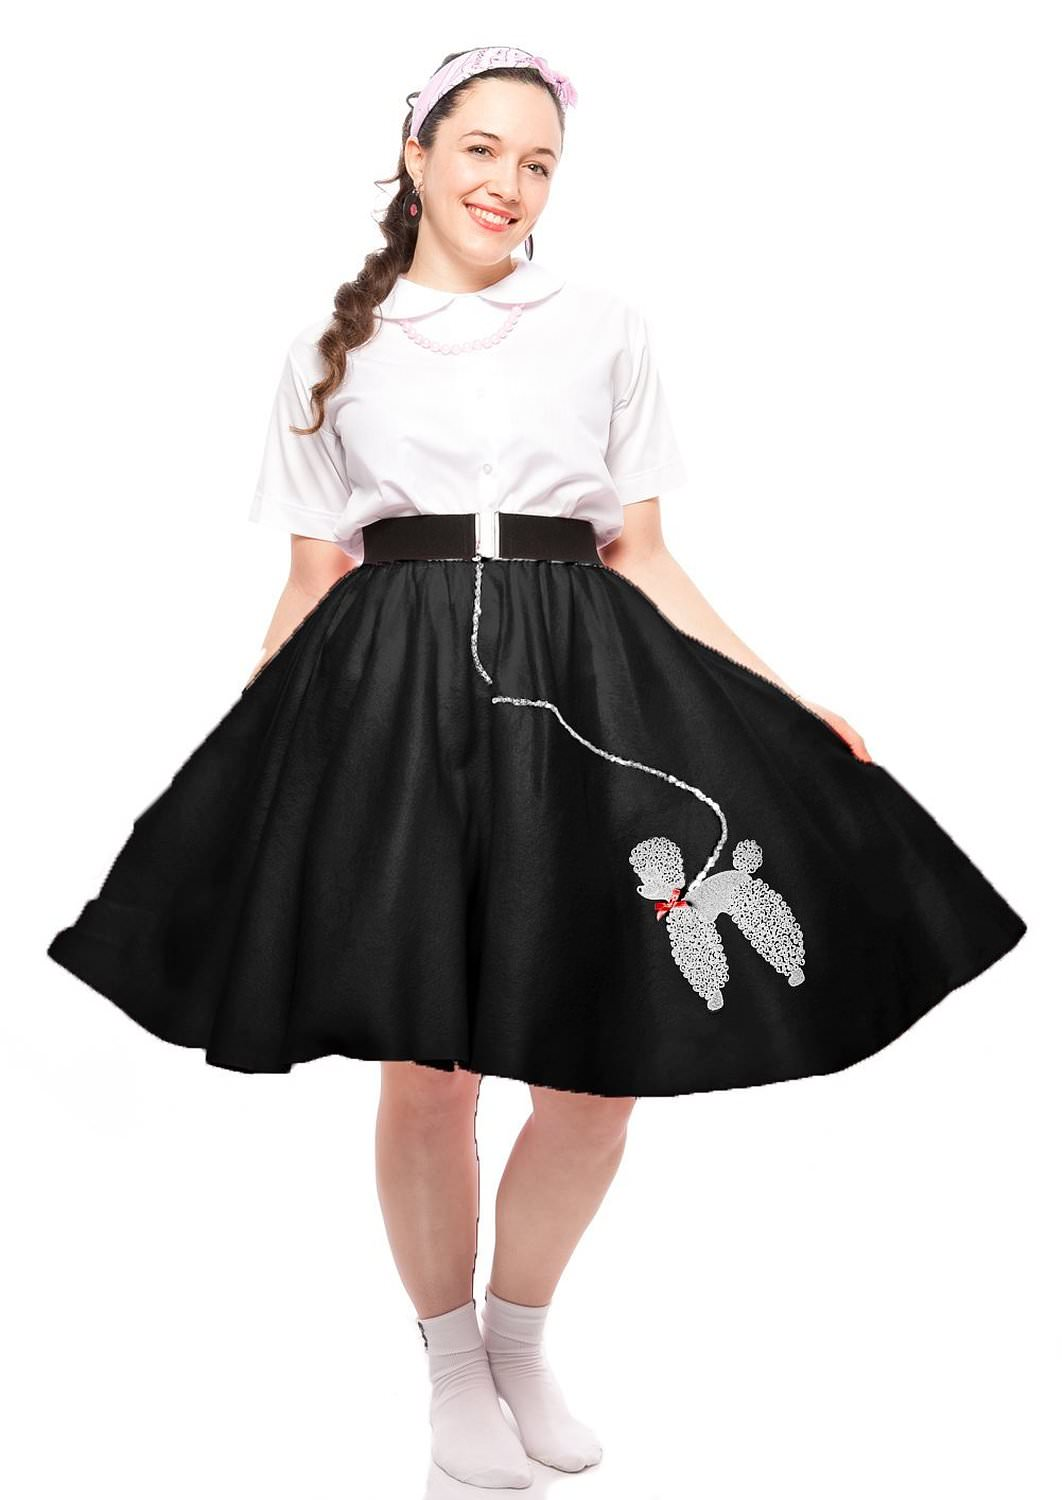 felt poodle skirt in retro colors